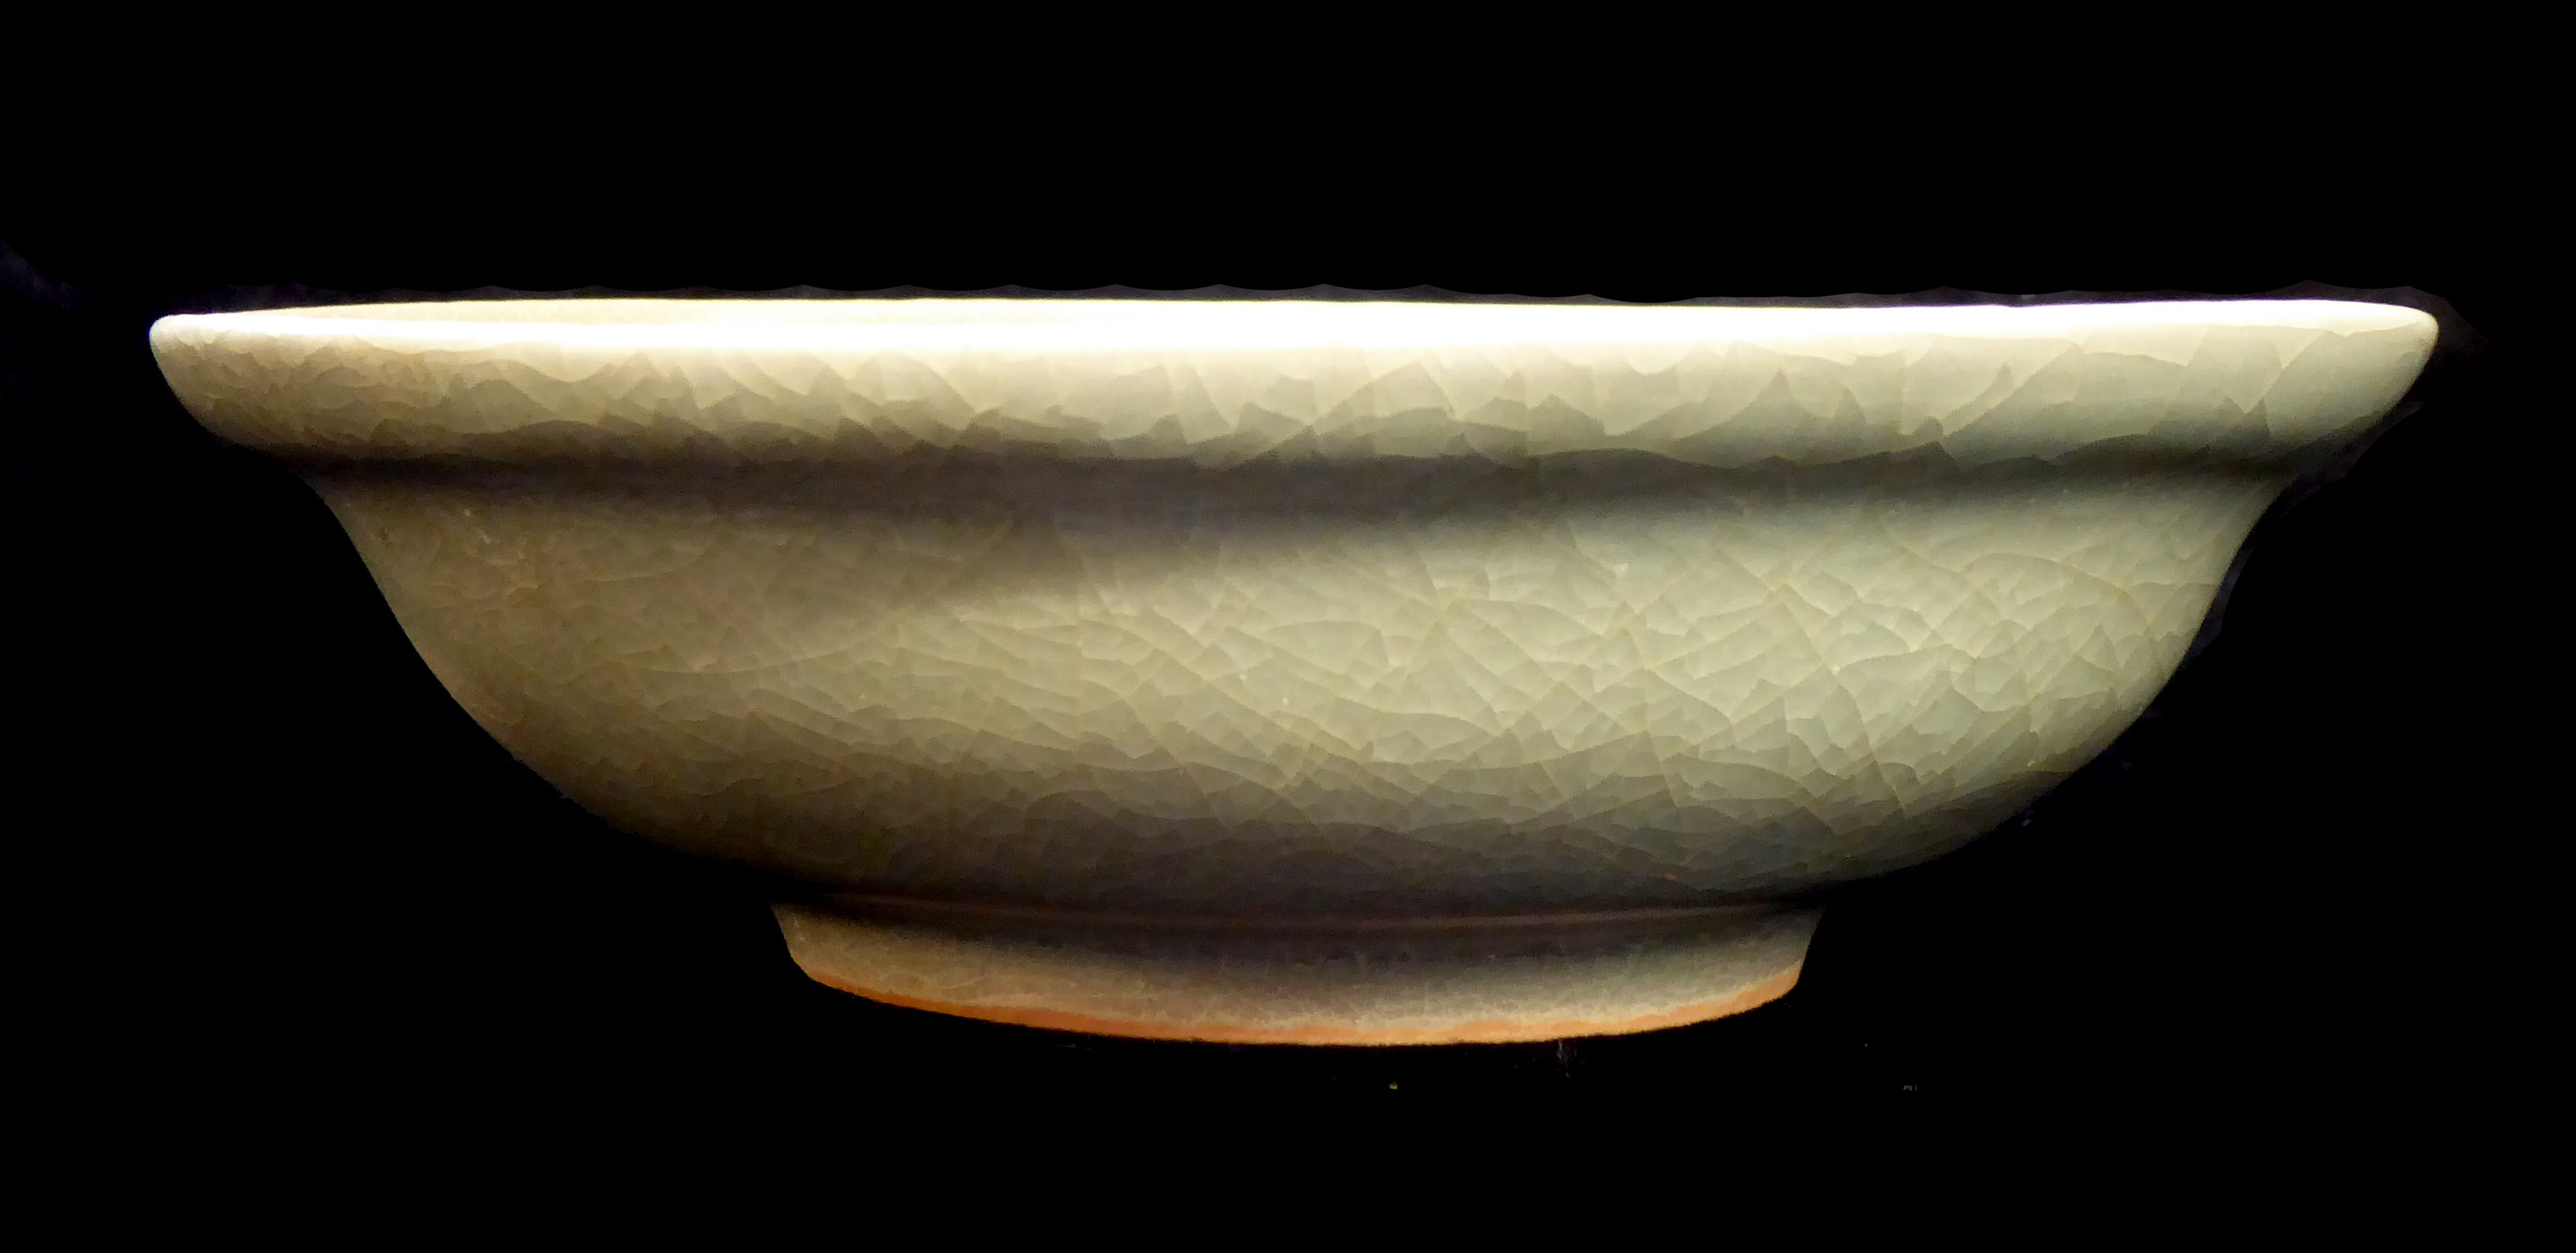 Lot 162 - A CHINESE SONG DYNASTY LONGQUAN CELADON GLAZE BOWL Of plain form, together with a vase of plain form